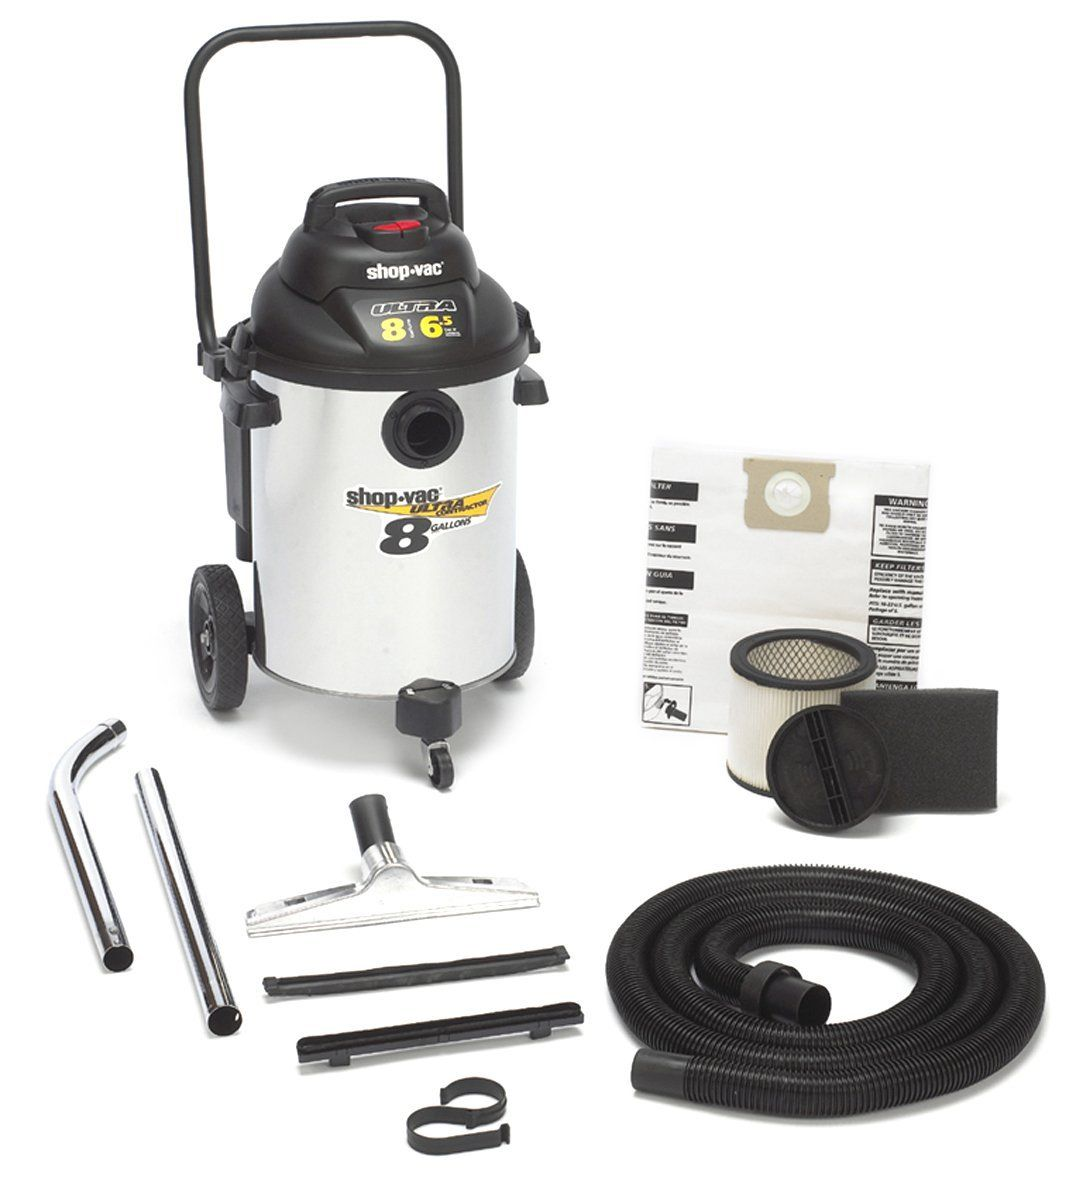 Shop-Vac 962-10 Ultra Contractor Series Wet/Dry Vac, Wet-Dry Vacuums